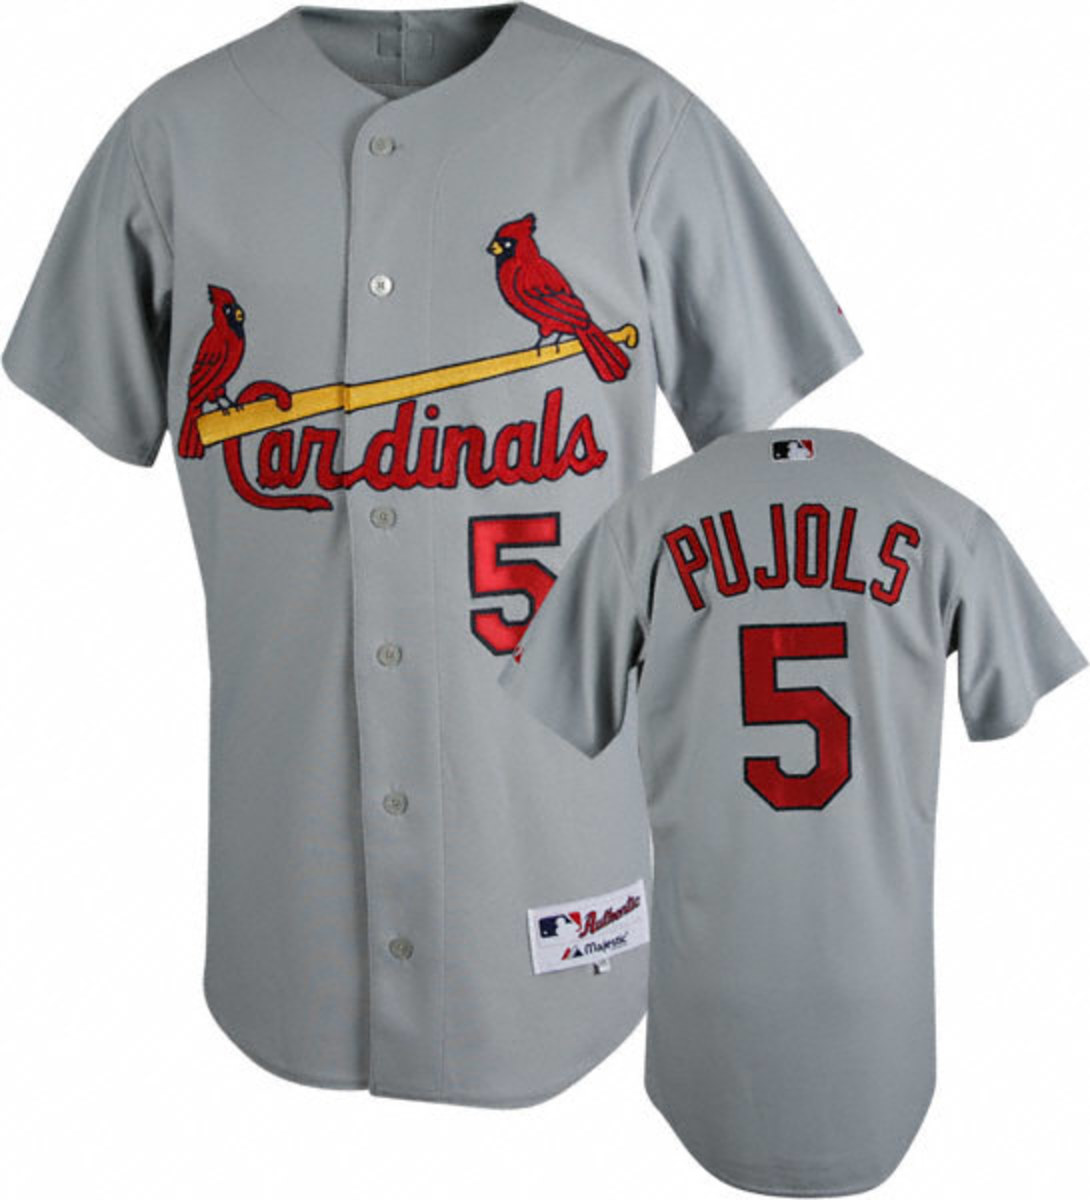 Is Your Authentic MLB Jersey Real? Buying Majestic Baseball Jerseys Online